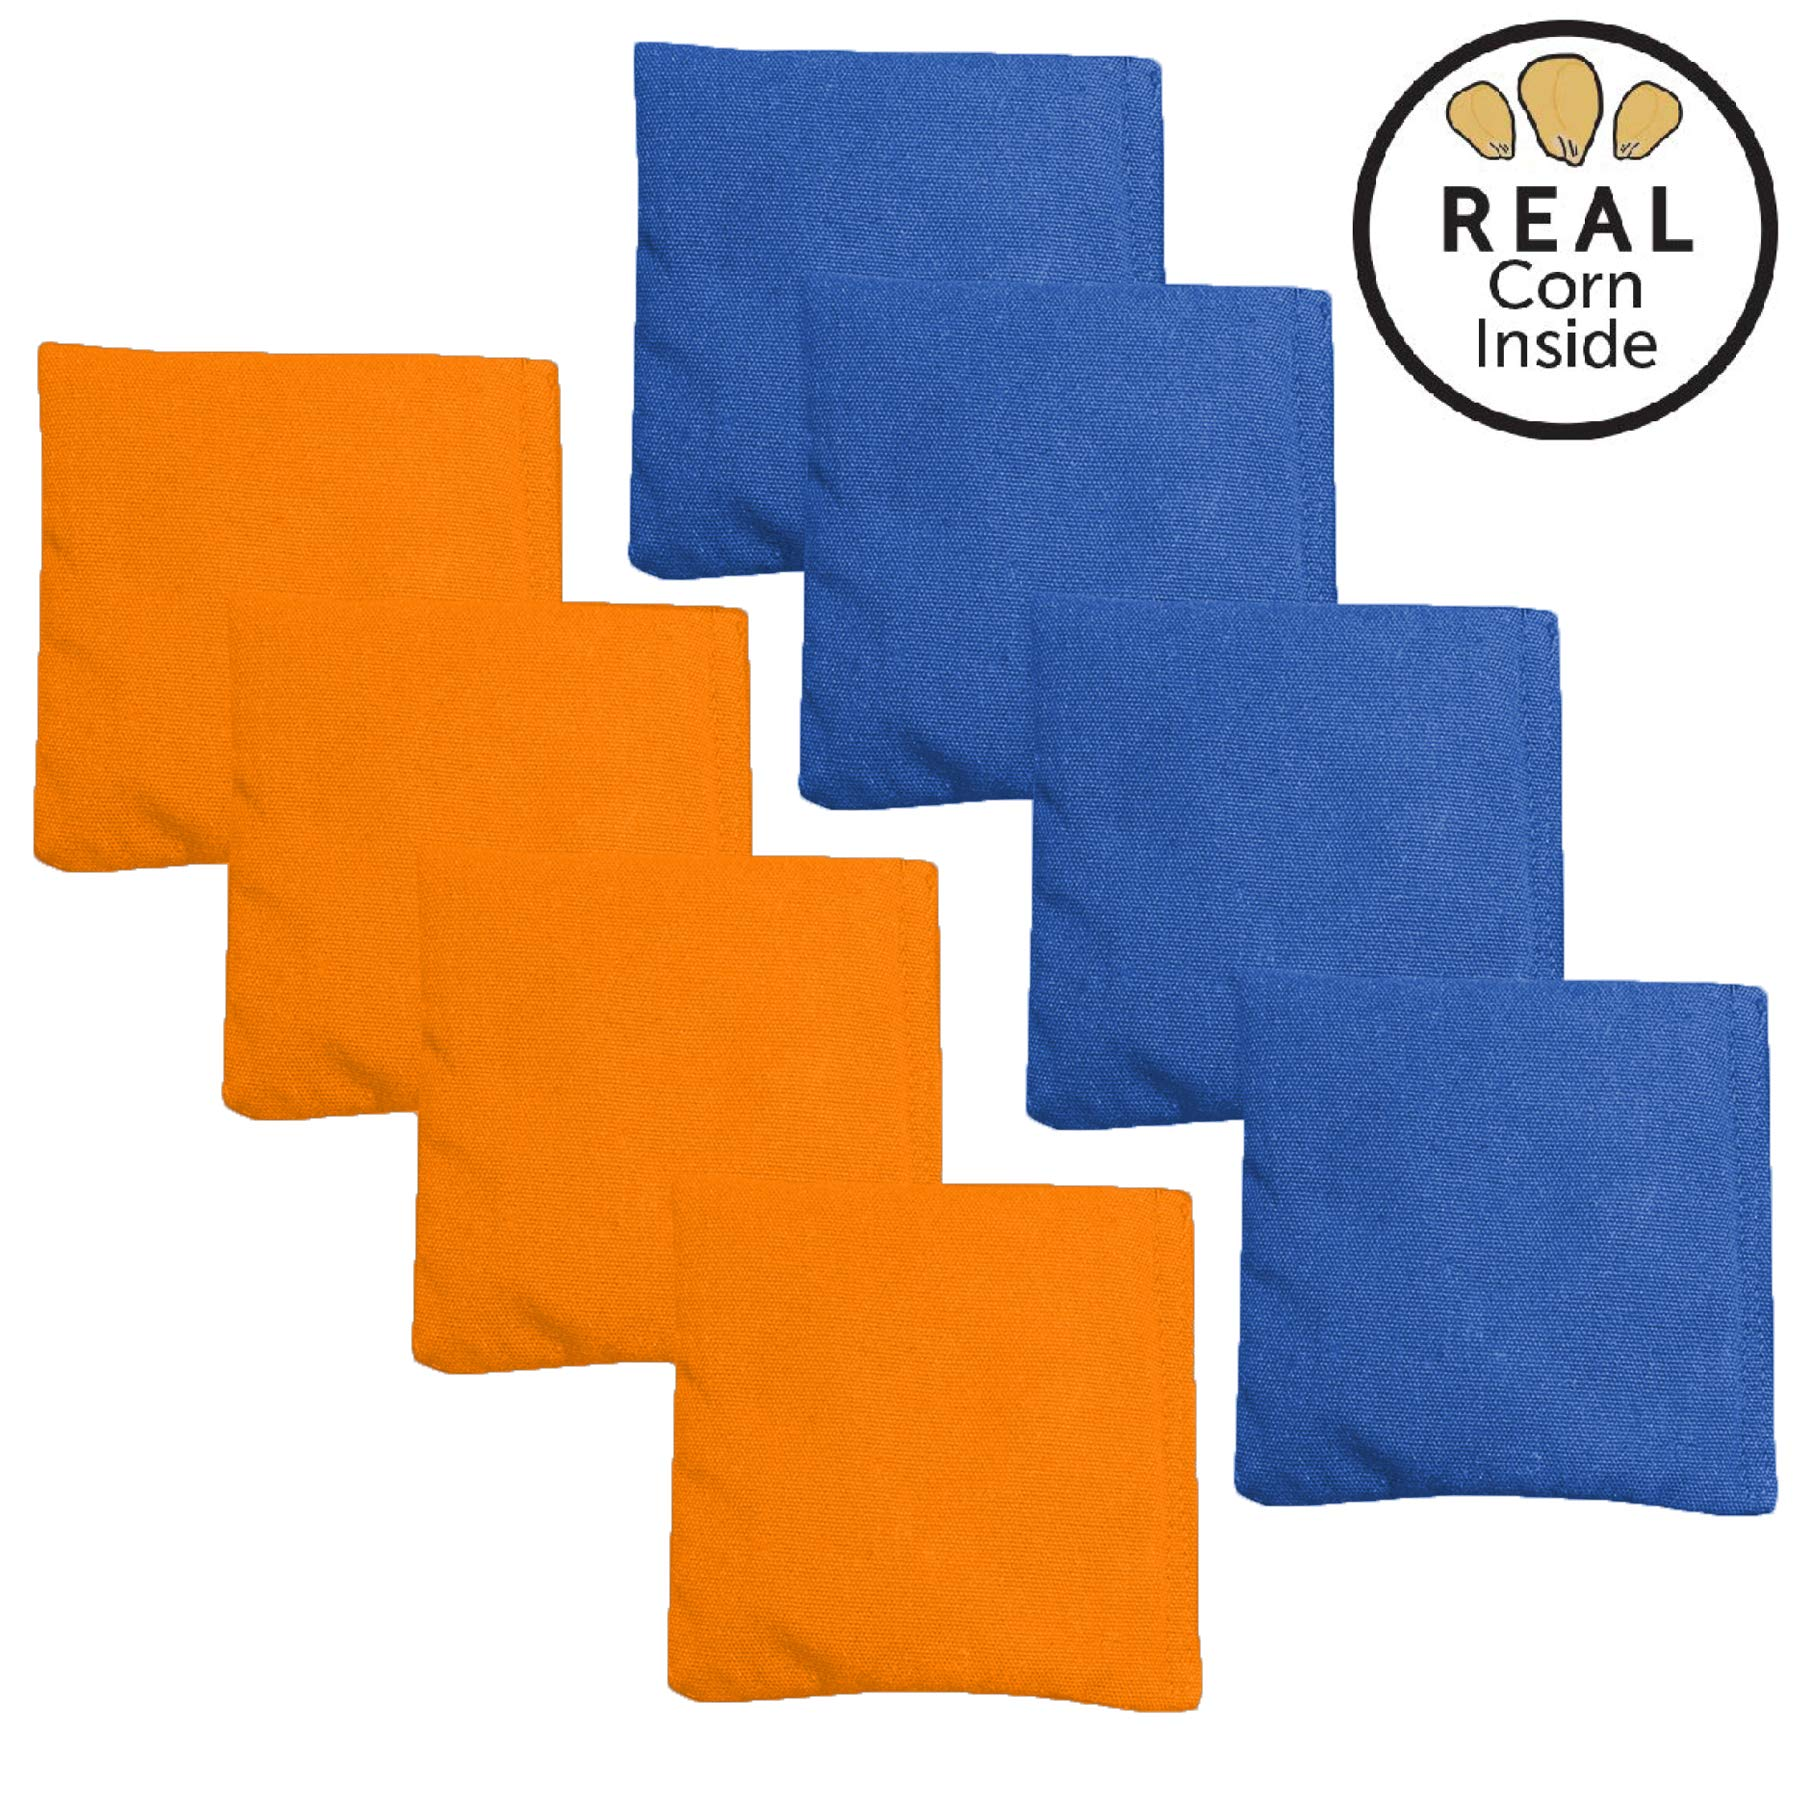 Corn Filled Cornhole Bags - Set of 8 Bean Bags for Corn Hole Game - Regulation Size & Weight - Orange & Blue by Play Platoon